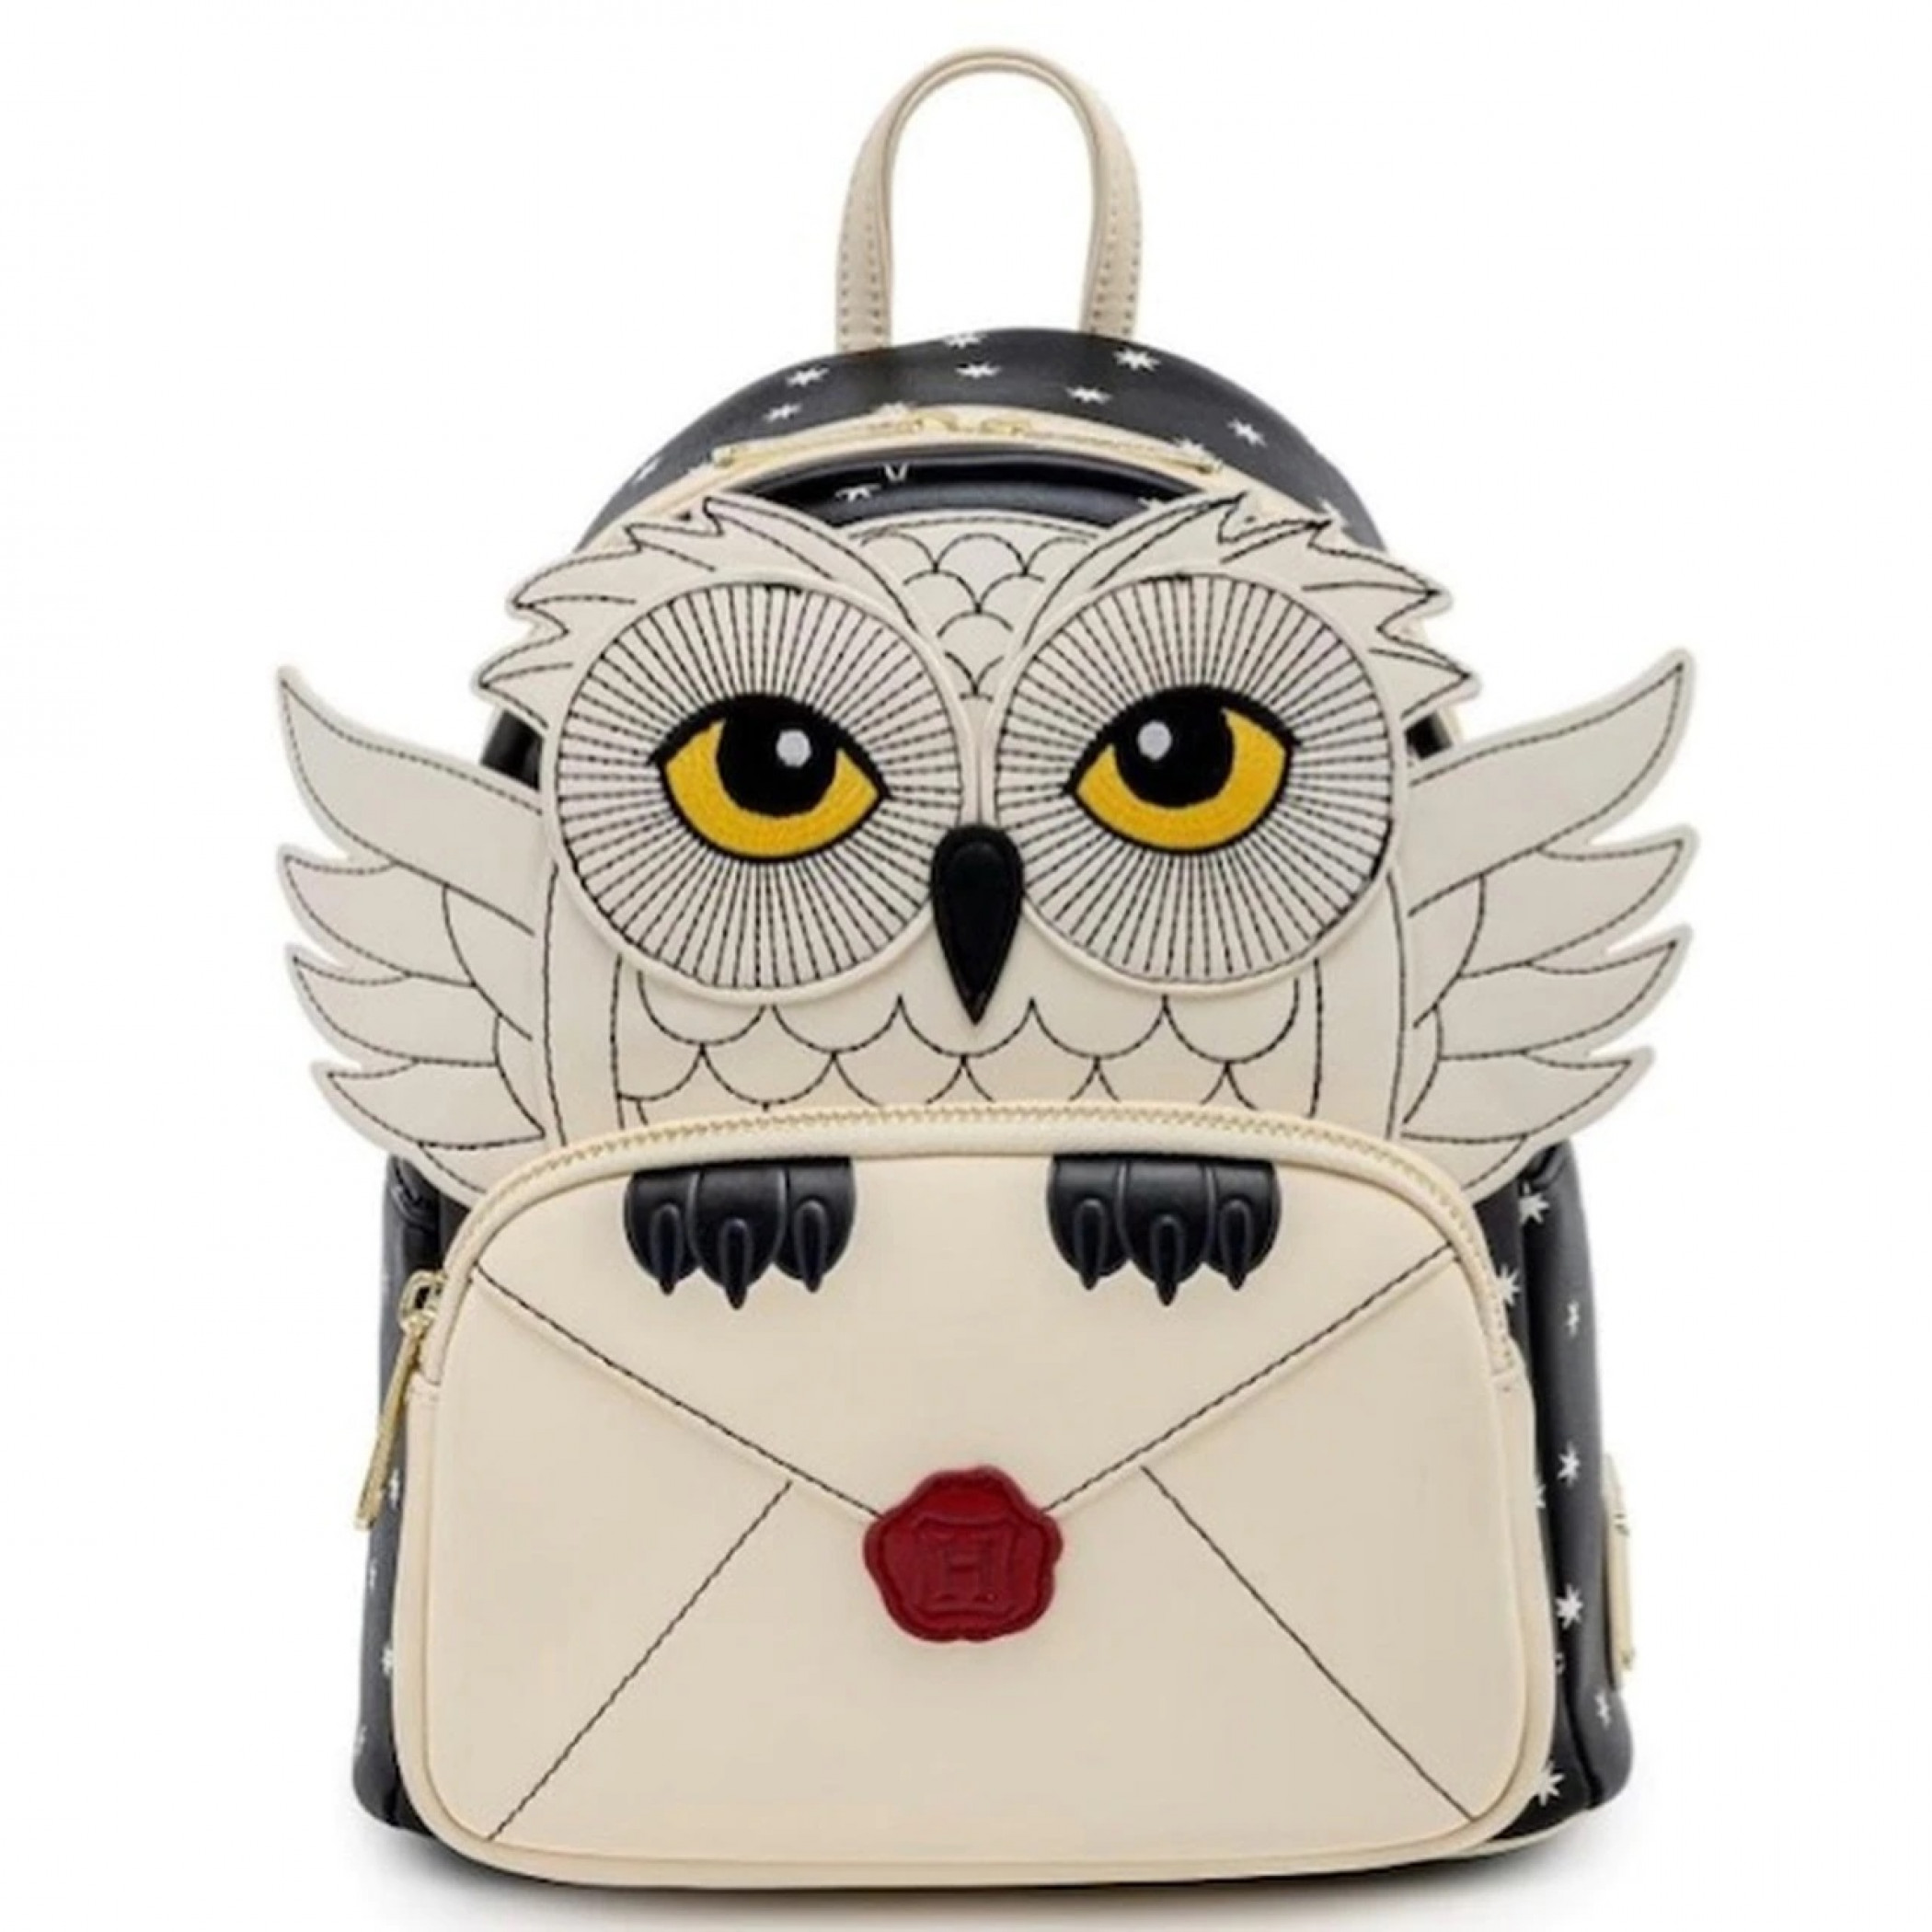 Harry Potter Hedwig Howler Mini Backpack by Loungefly